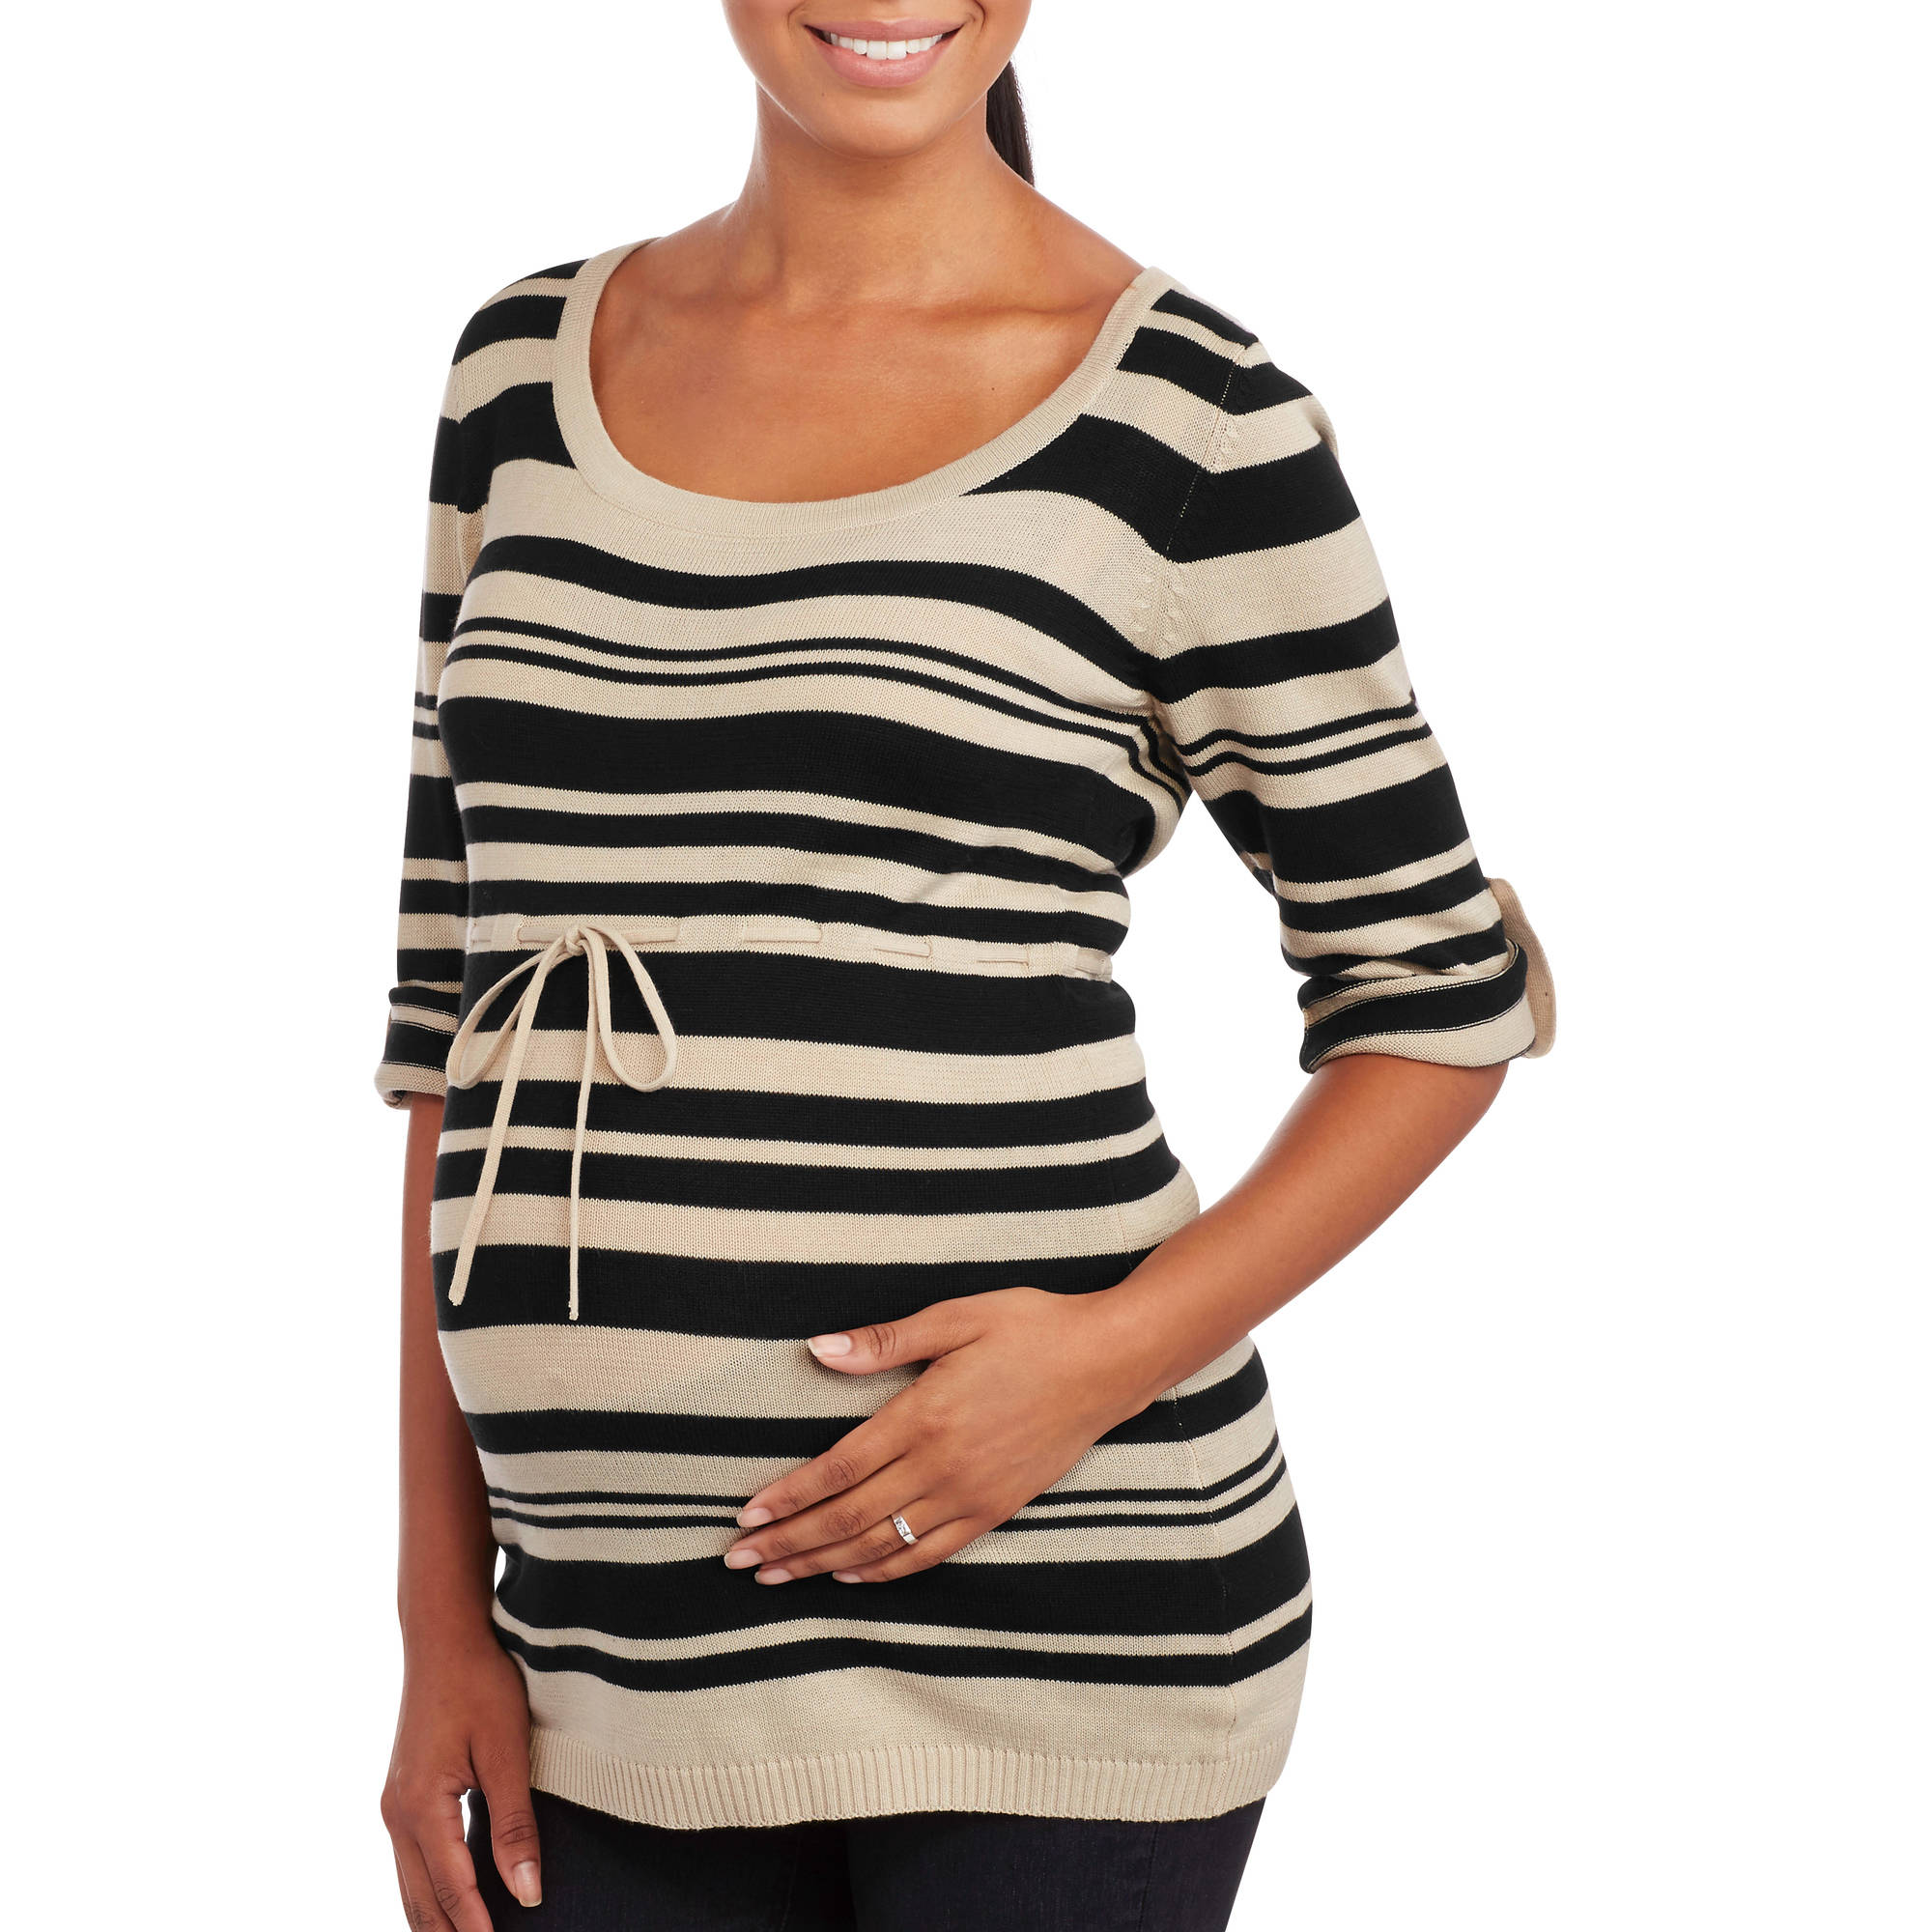 Oh! Mamma Maternity Striped Sweater Tunic with Drawstring Waist